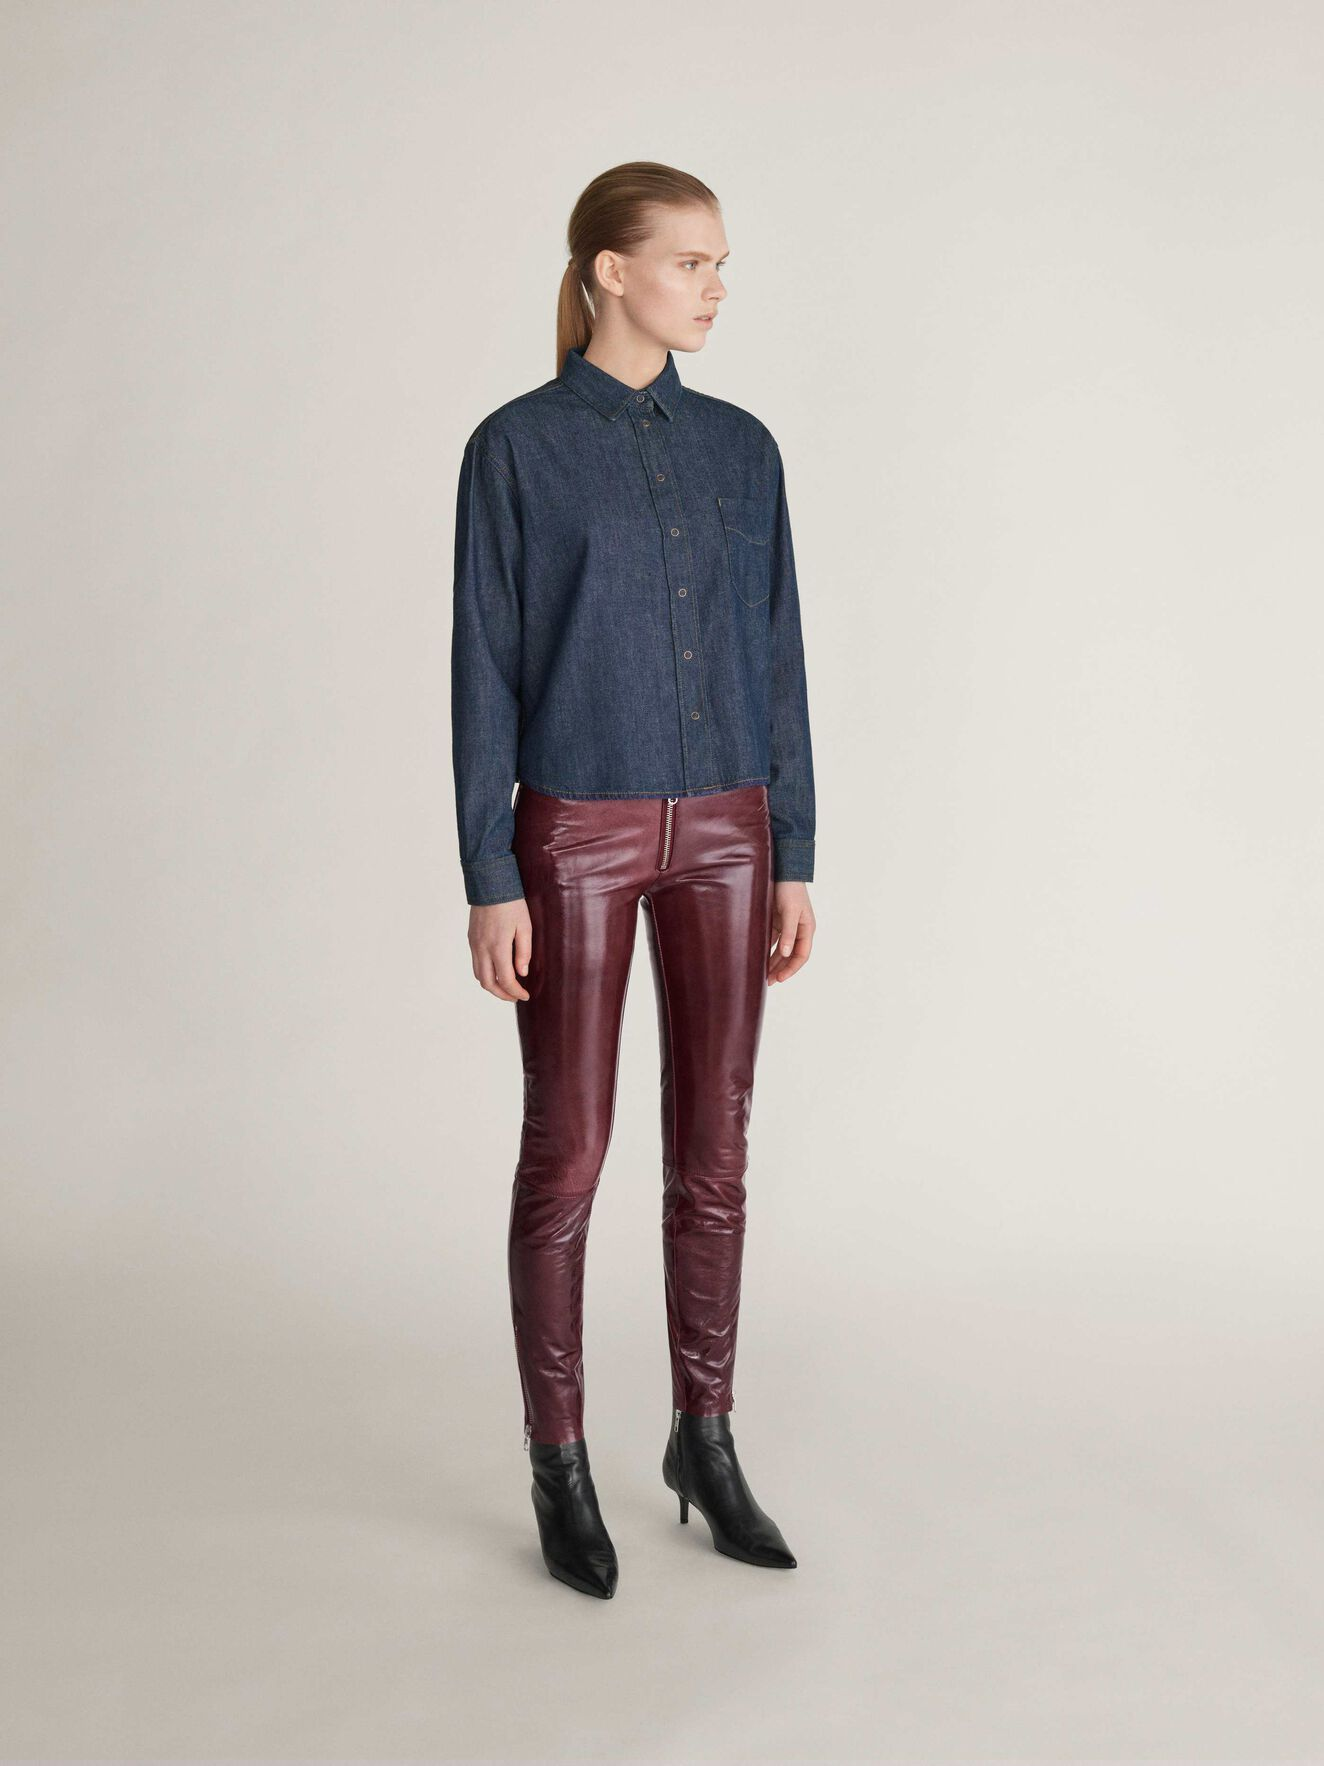 Haste Shirt in Midnight blue from Tiger of Sweden